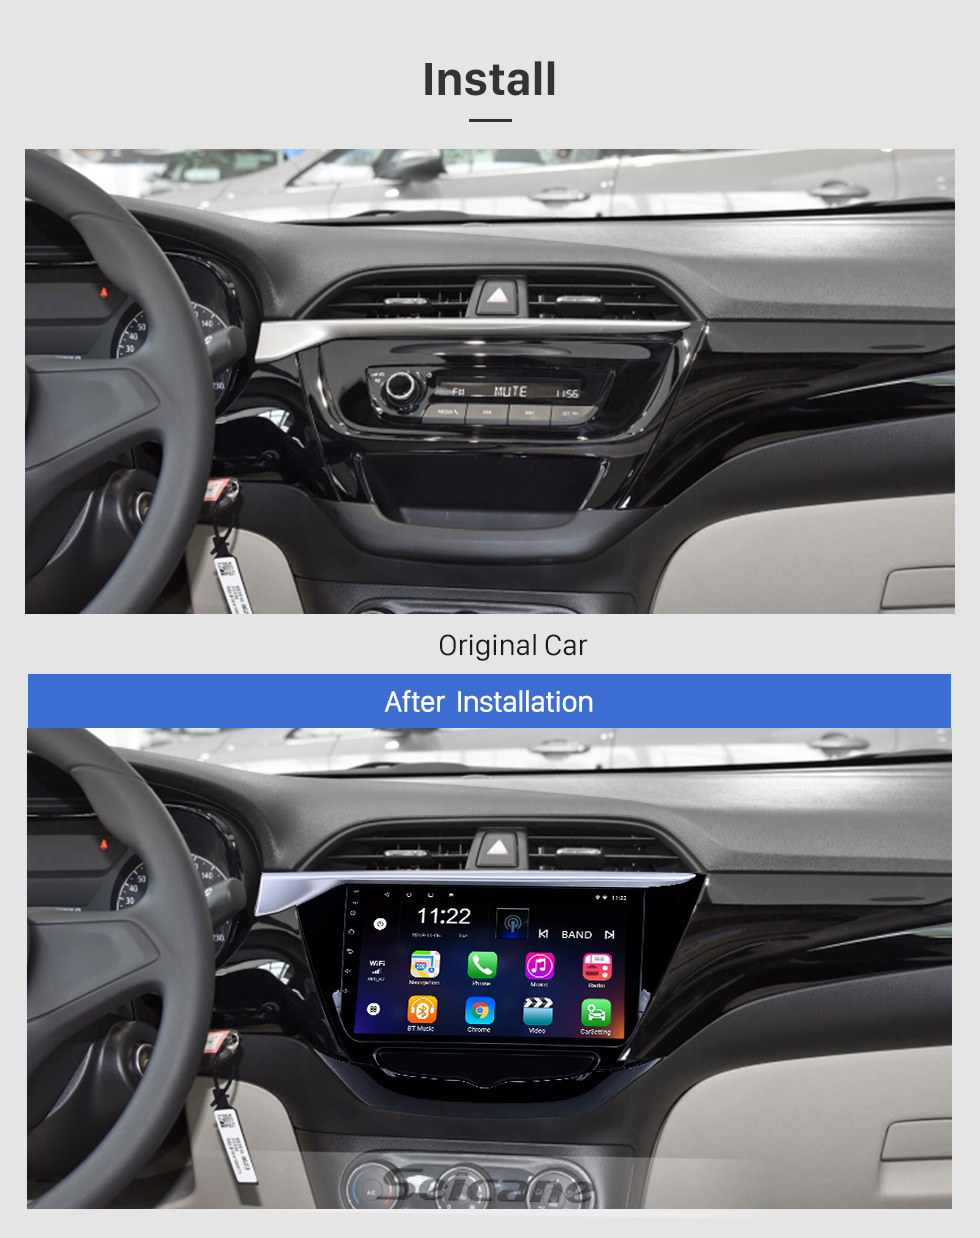 Seicane OEM 9 inch Android 10.0 Radio for 2018-2019 Buick Excelle Bluetooth HD Touchscreen GPS Navigation support Carplay OBD2 TPMS